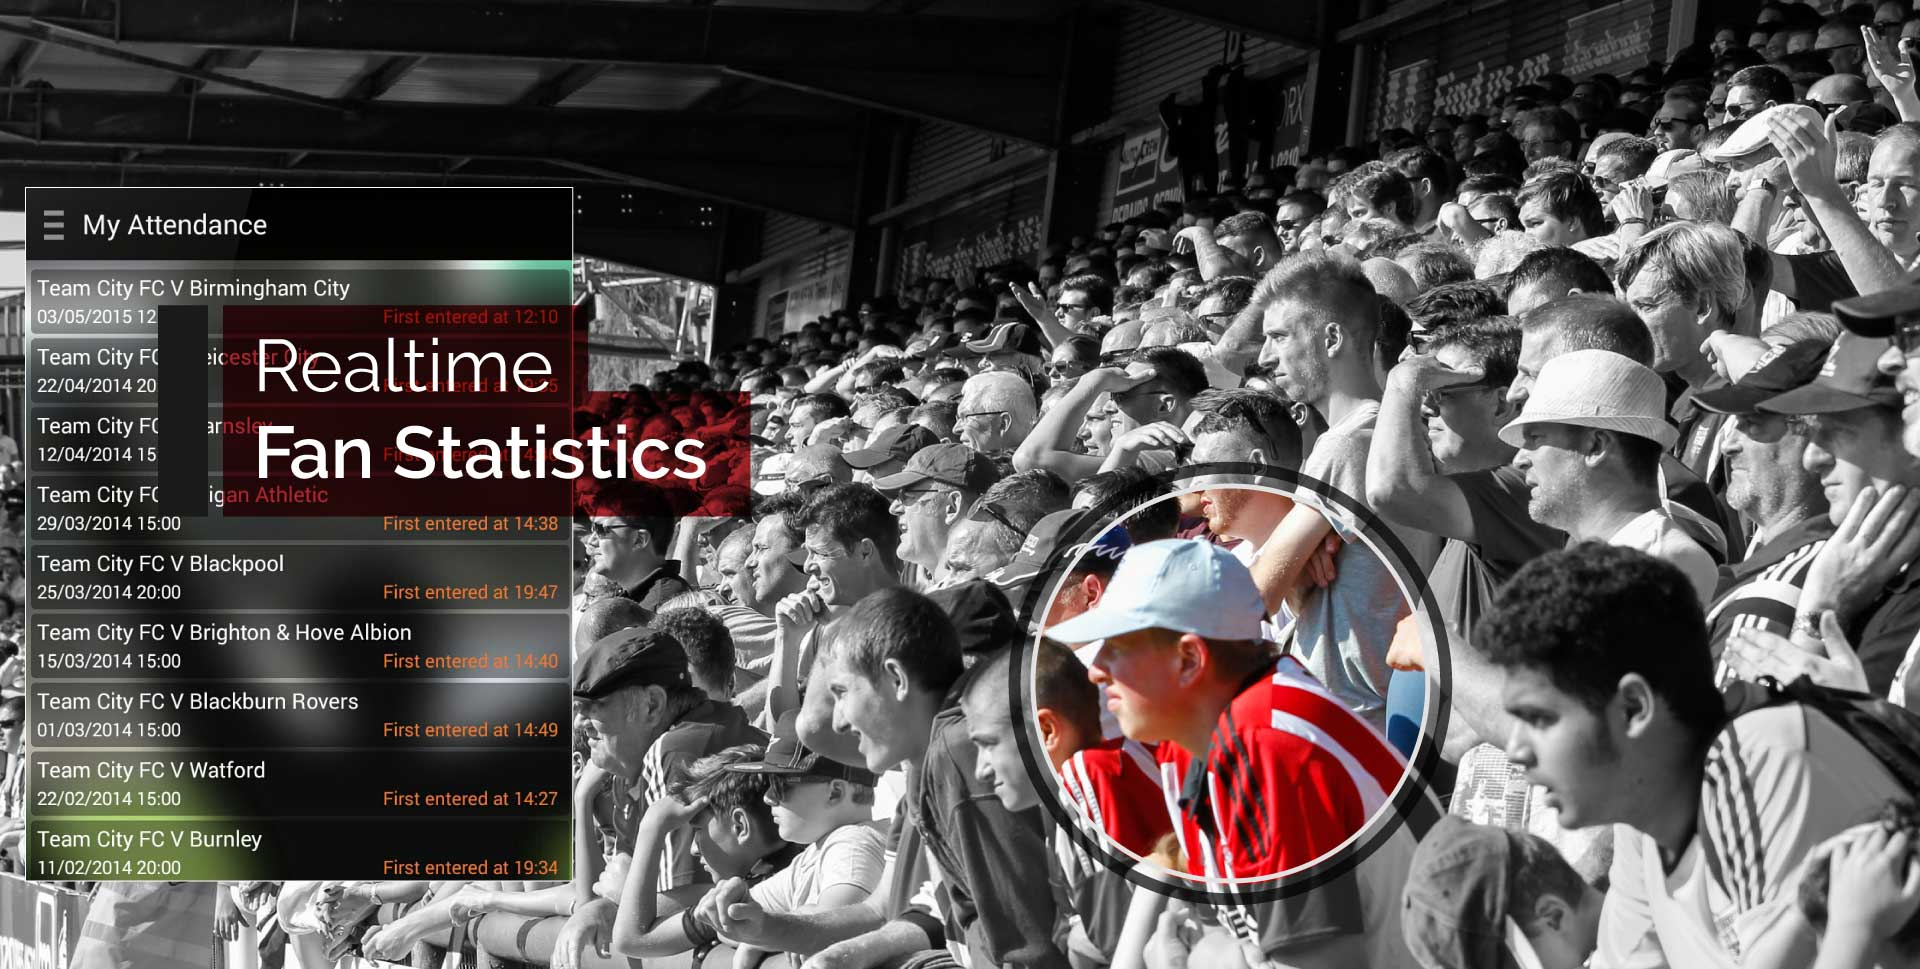 TeamCard realtime fan stats